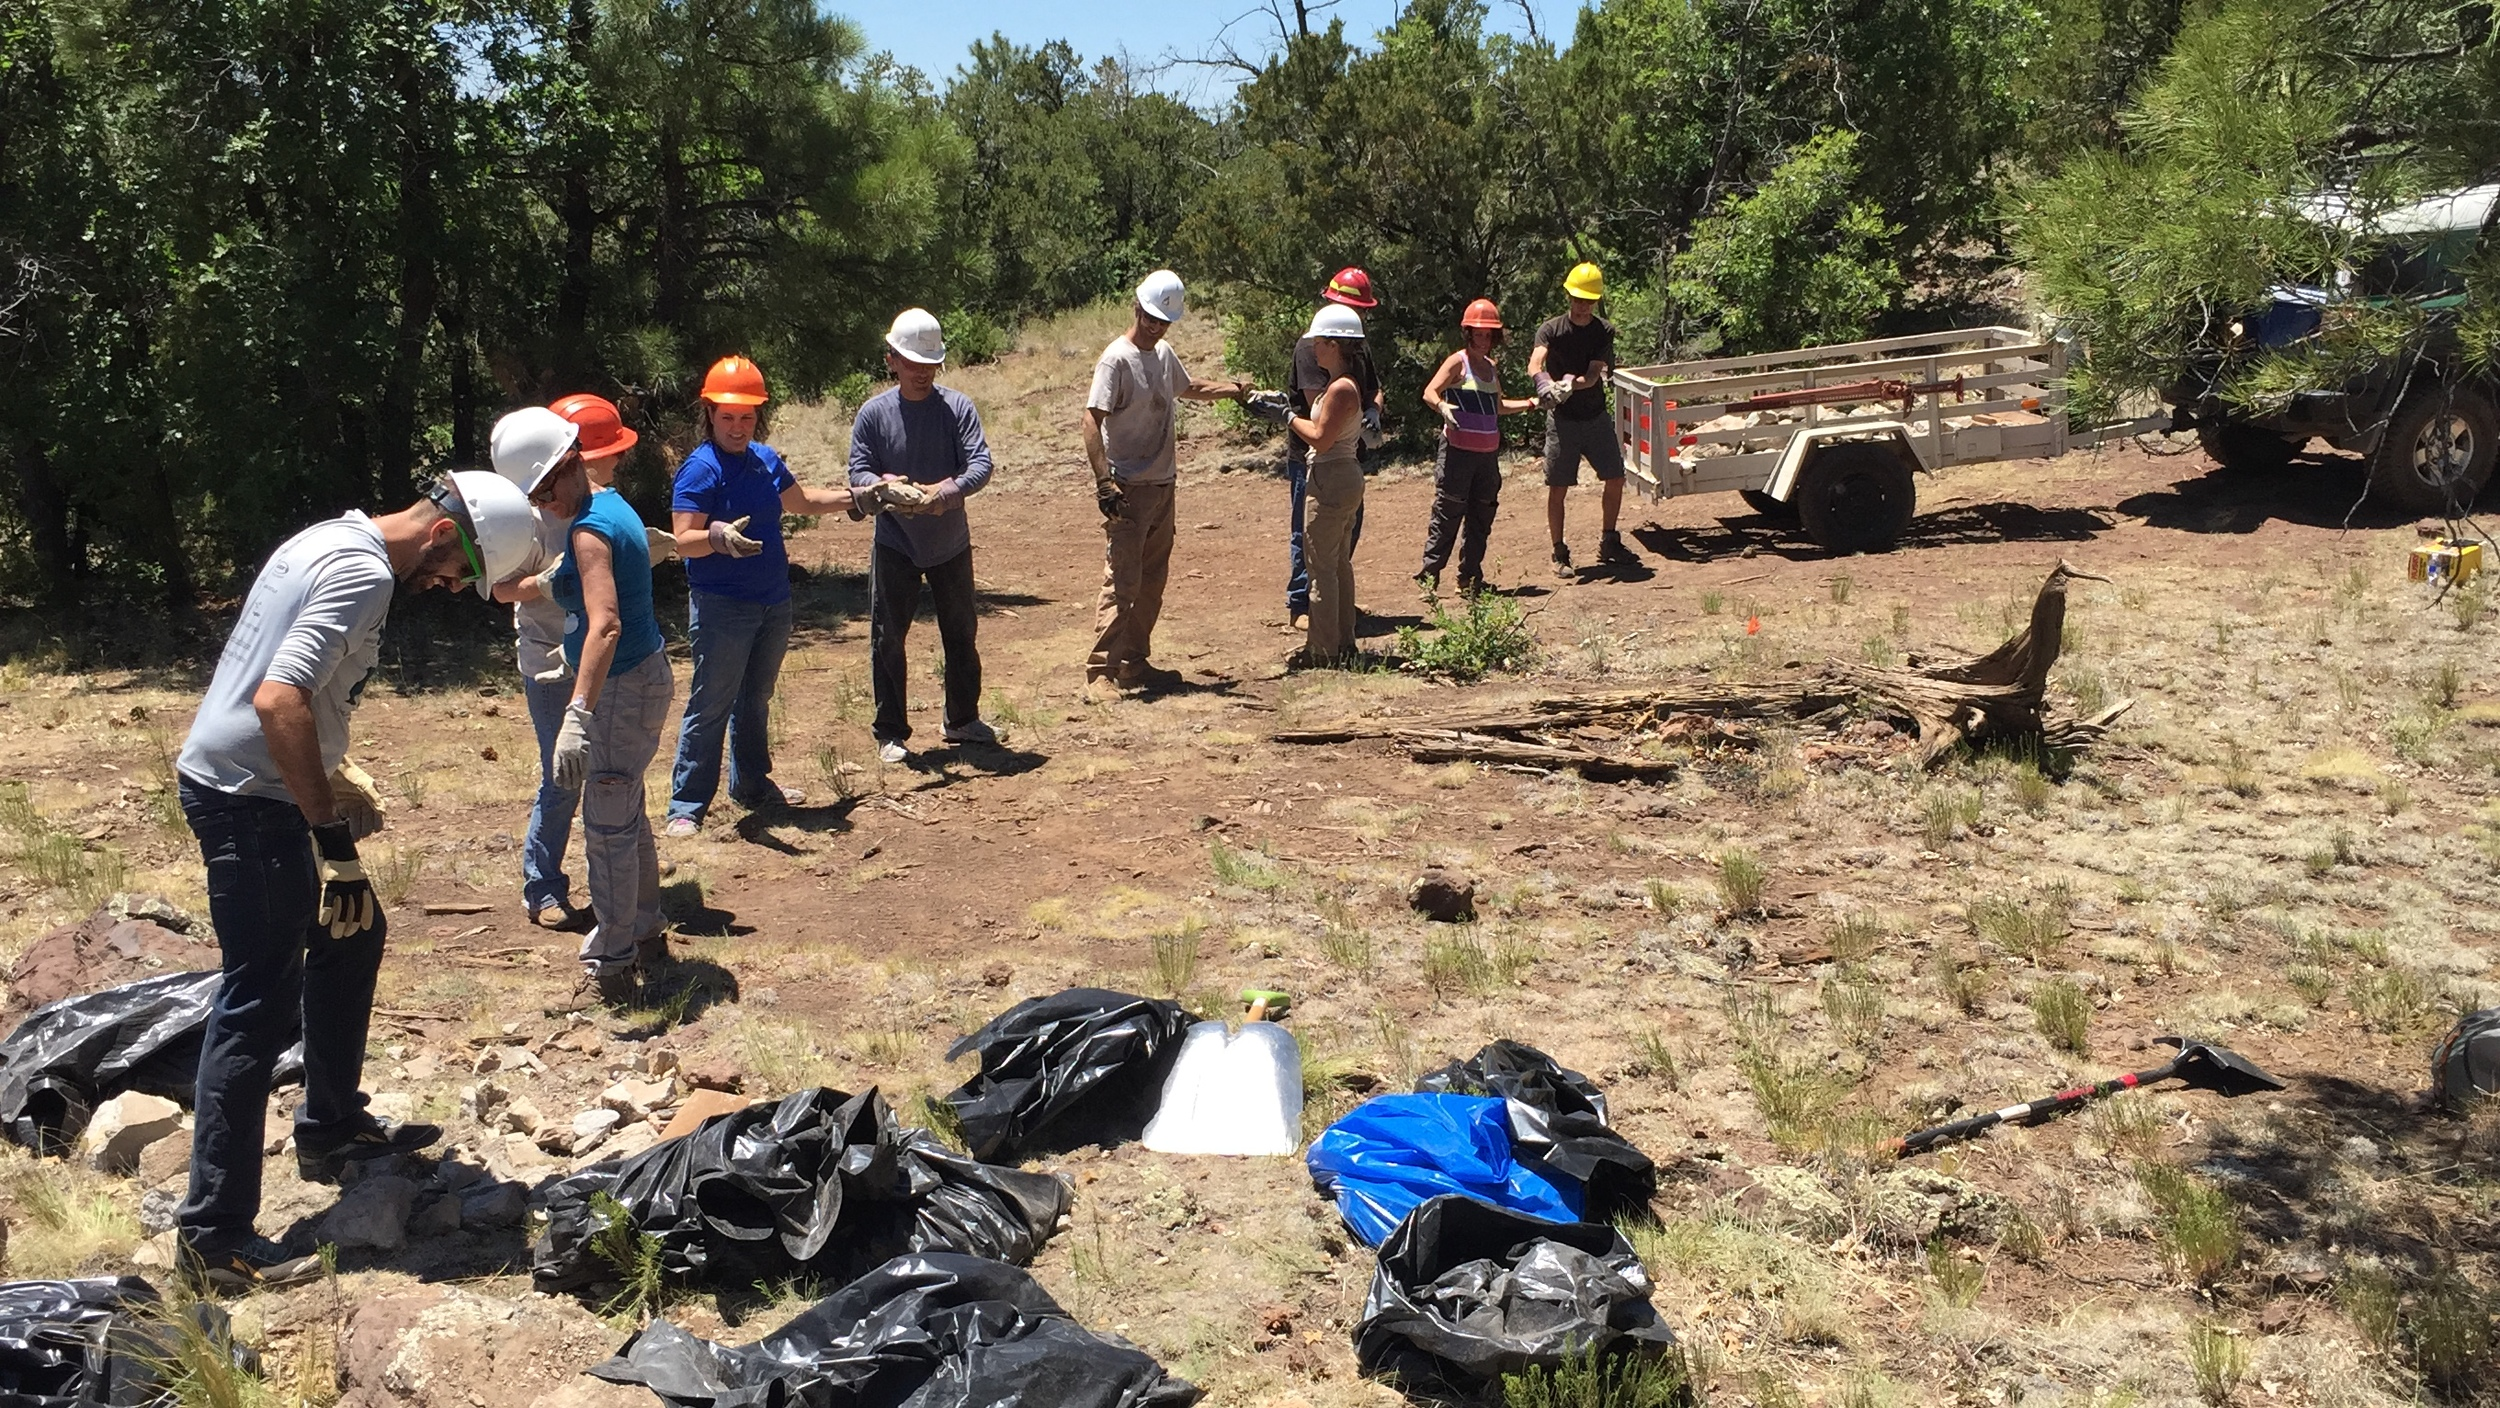 07/16/16 - Trash Cleanup Project with volunteers along the Arizona Trail in the Coconino National Forest outside Flagstaff, near Walnut Canyon.Click HERE to view the entire restoration.